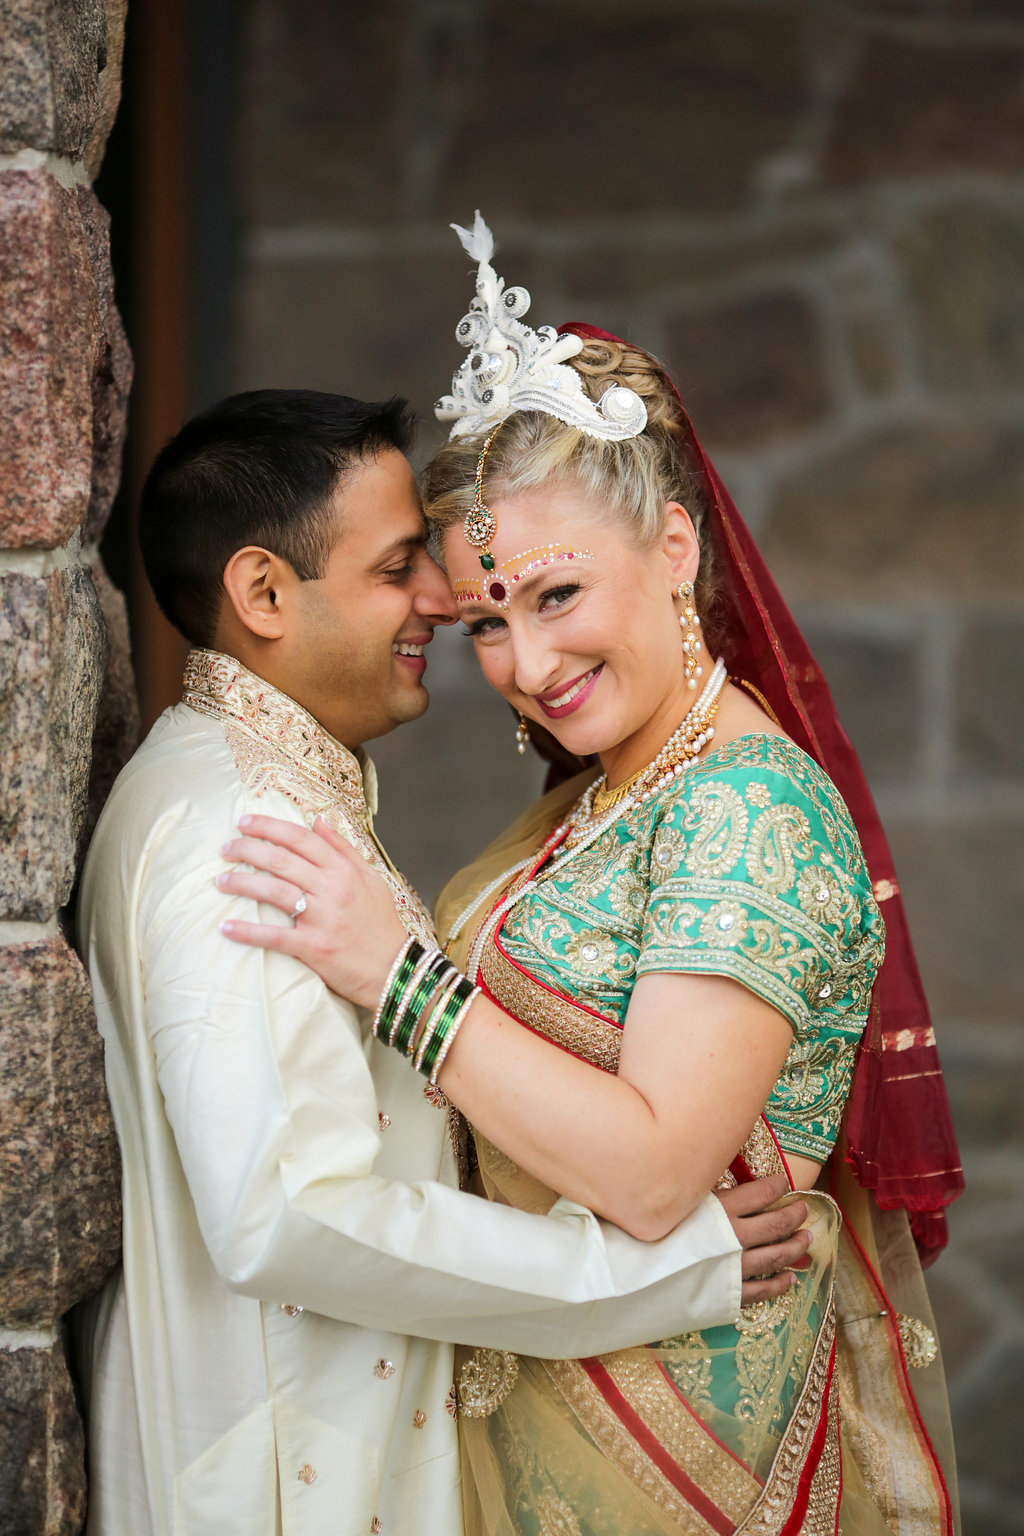 Indian groom and Jewish bride at the Inn at Erlowest in Lake George, NY